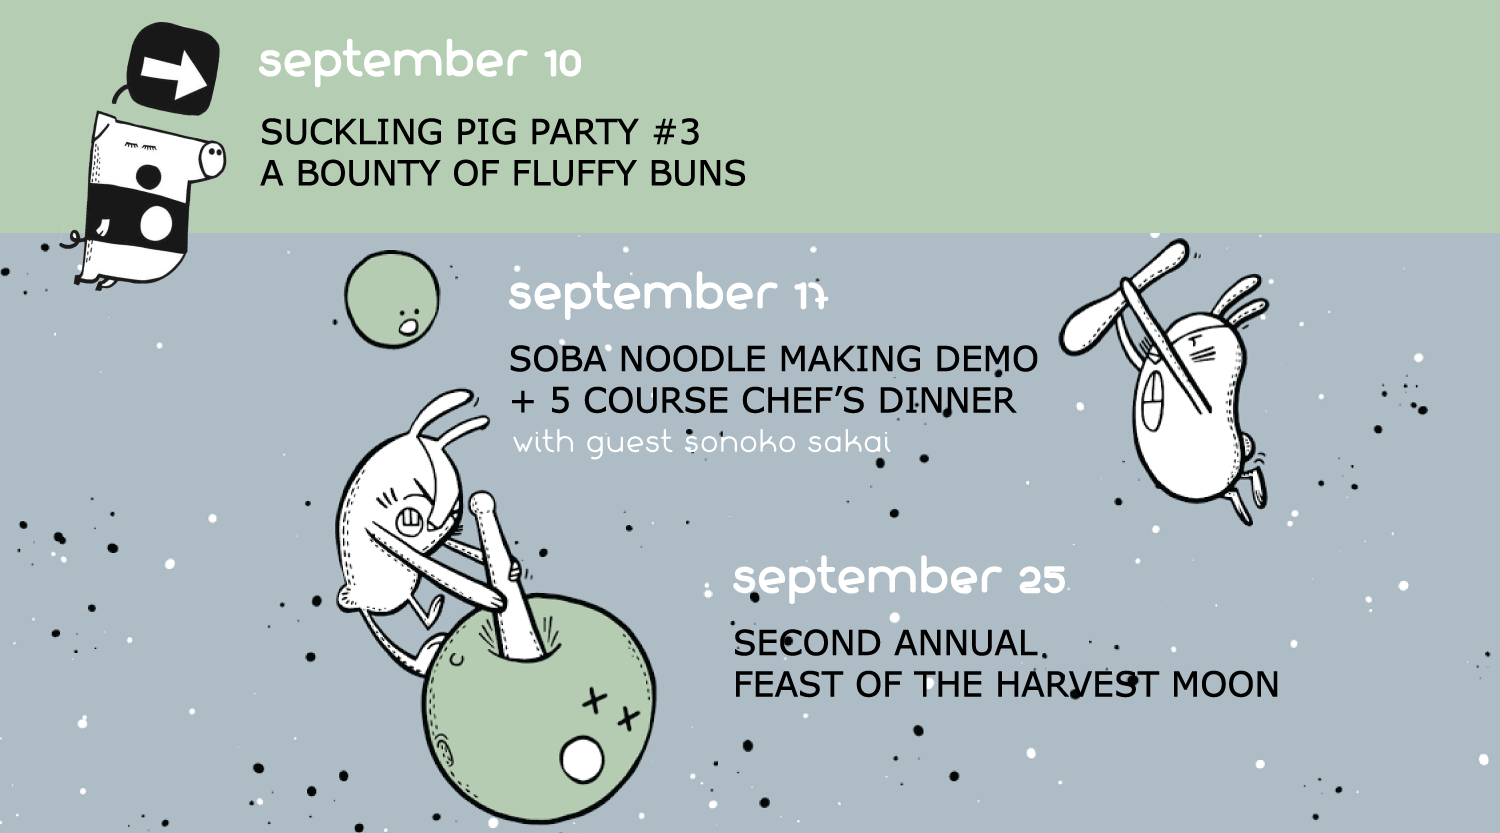 September 2018 Events at Miss Kim